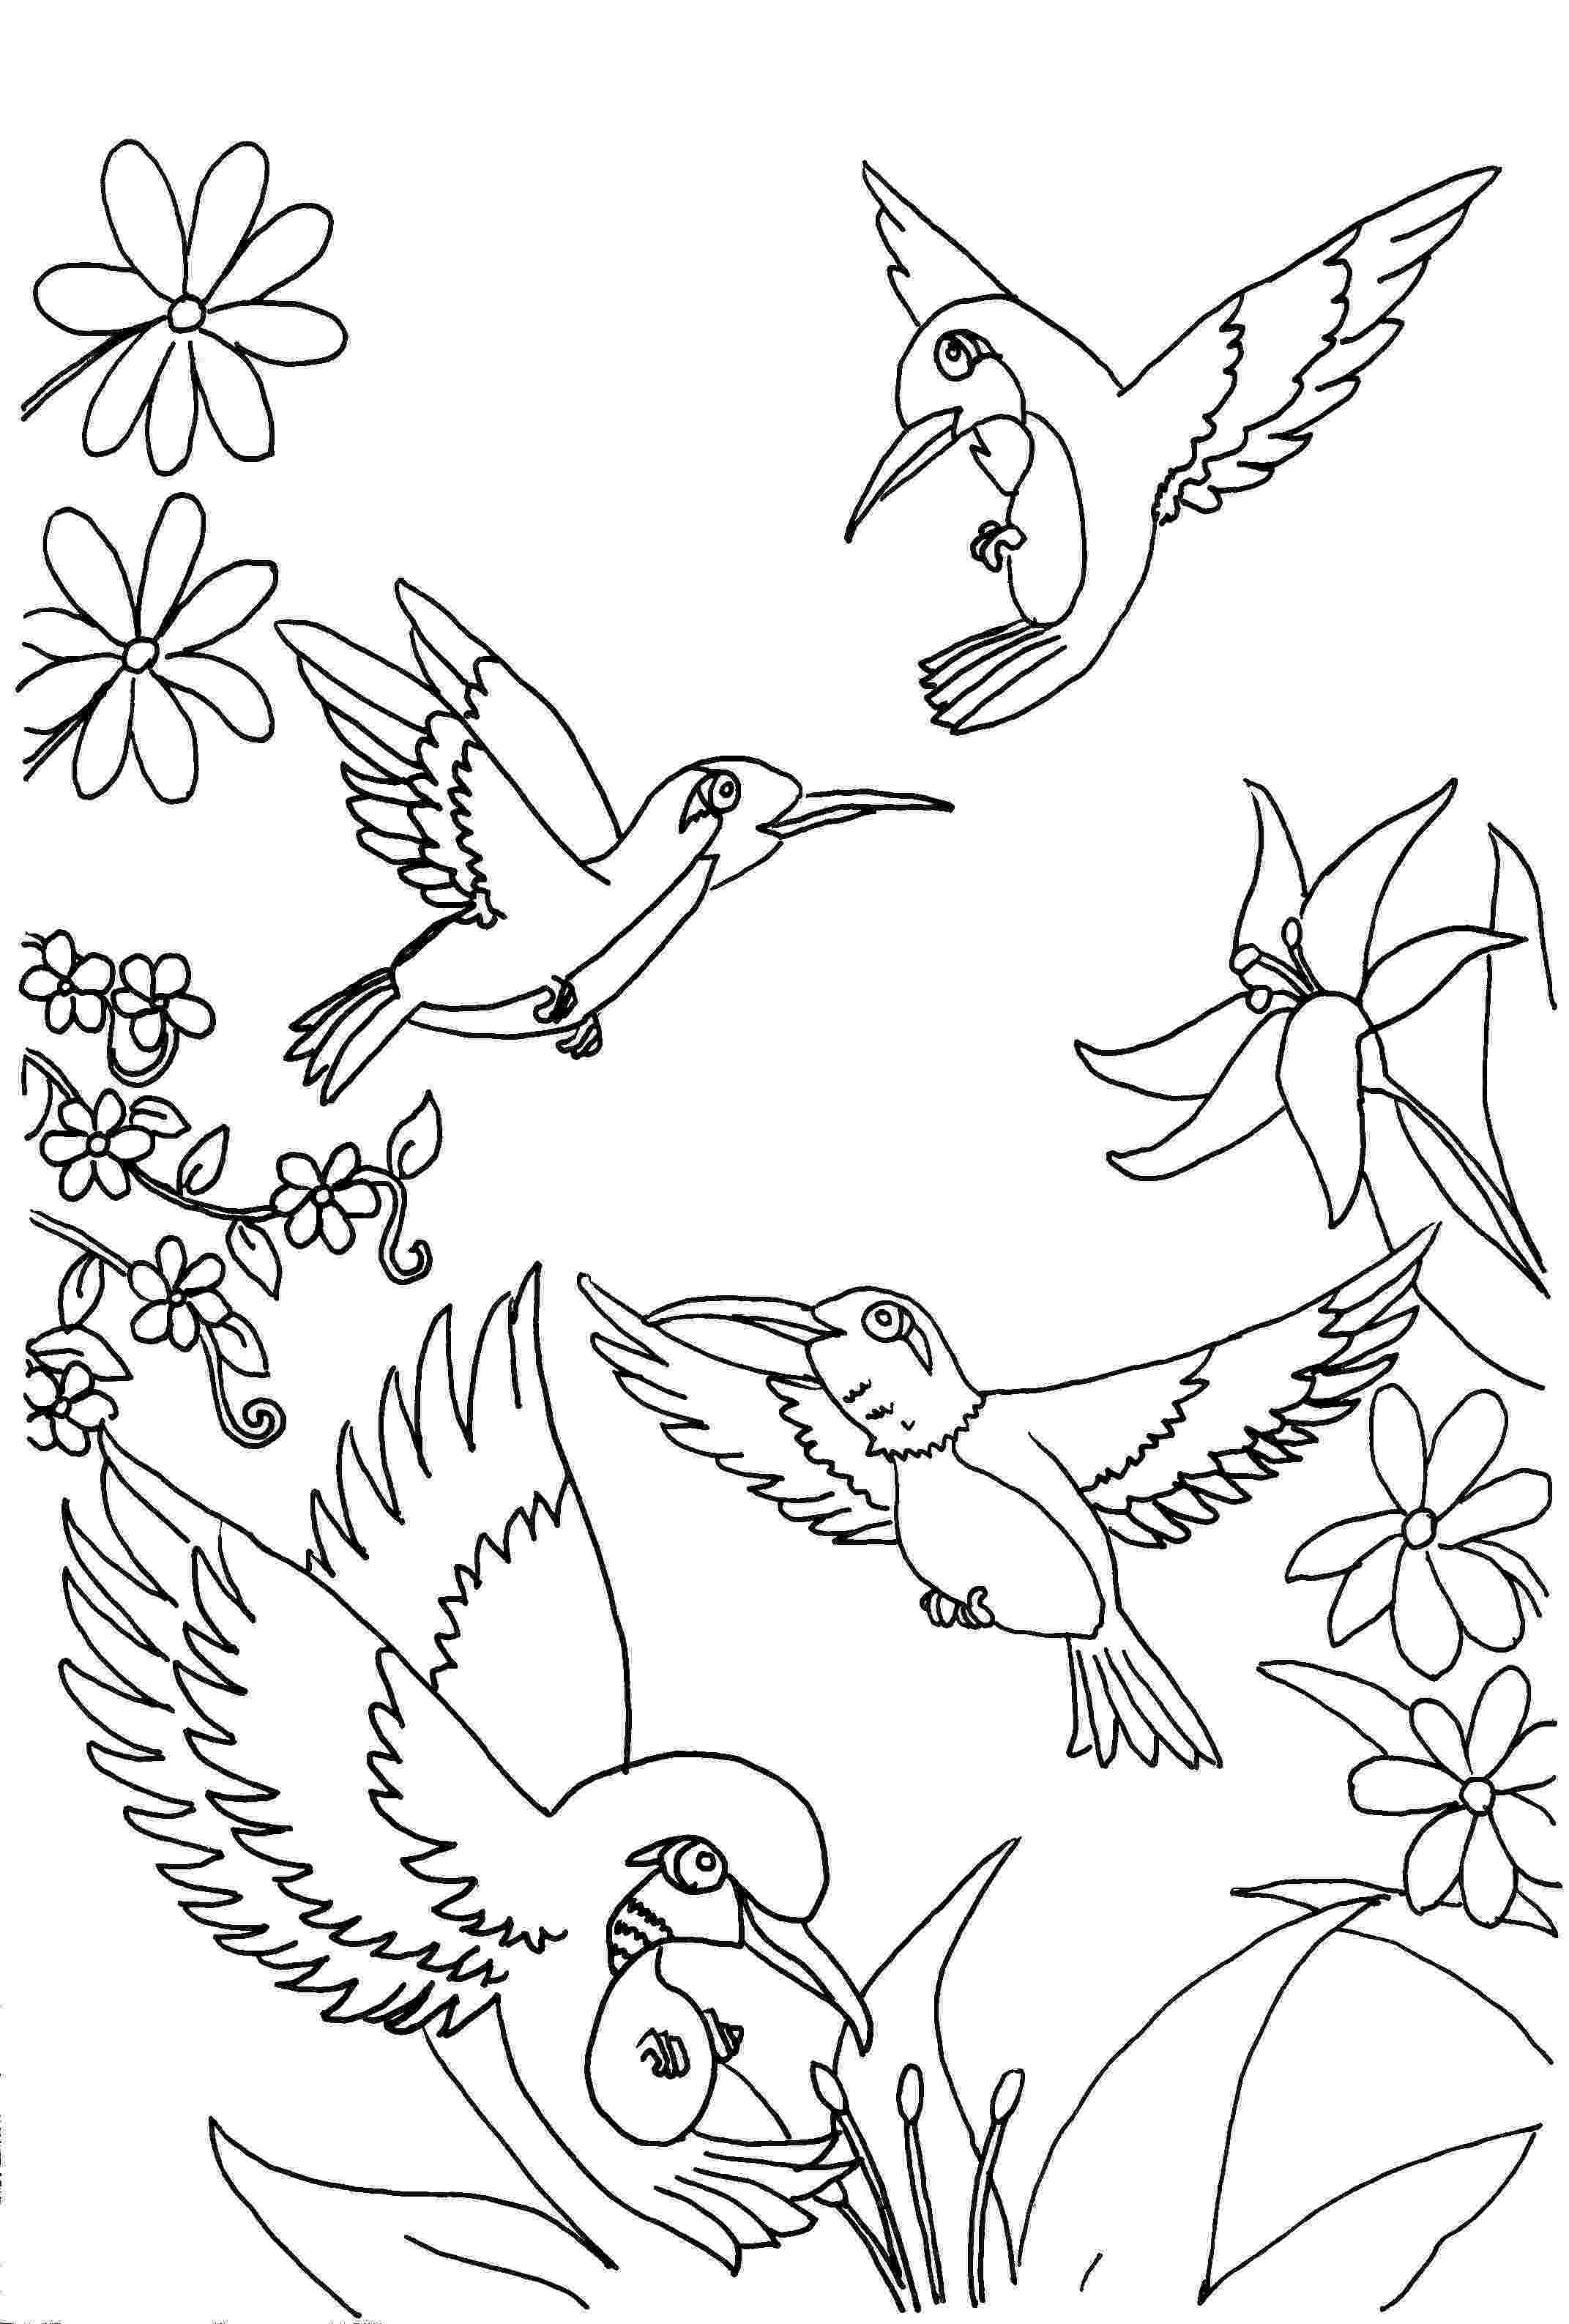 printable bird coloring pages free printable tweety bird coloring pages for kids printable pages bird coloring